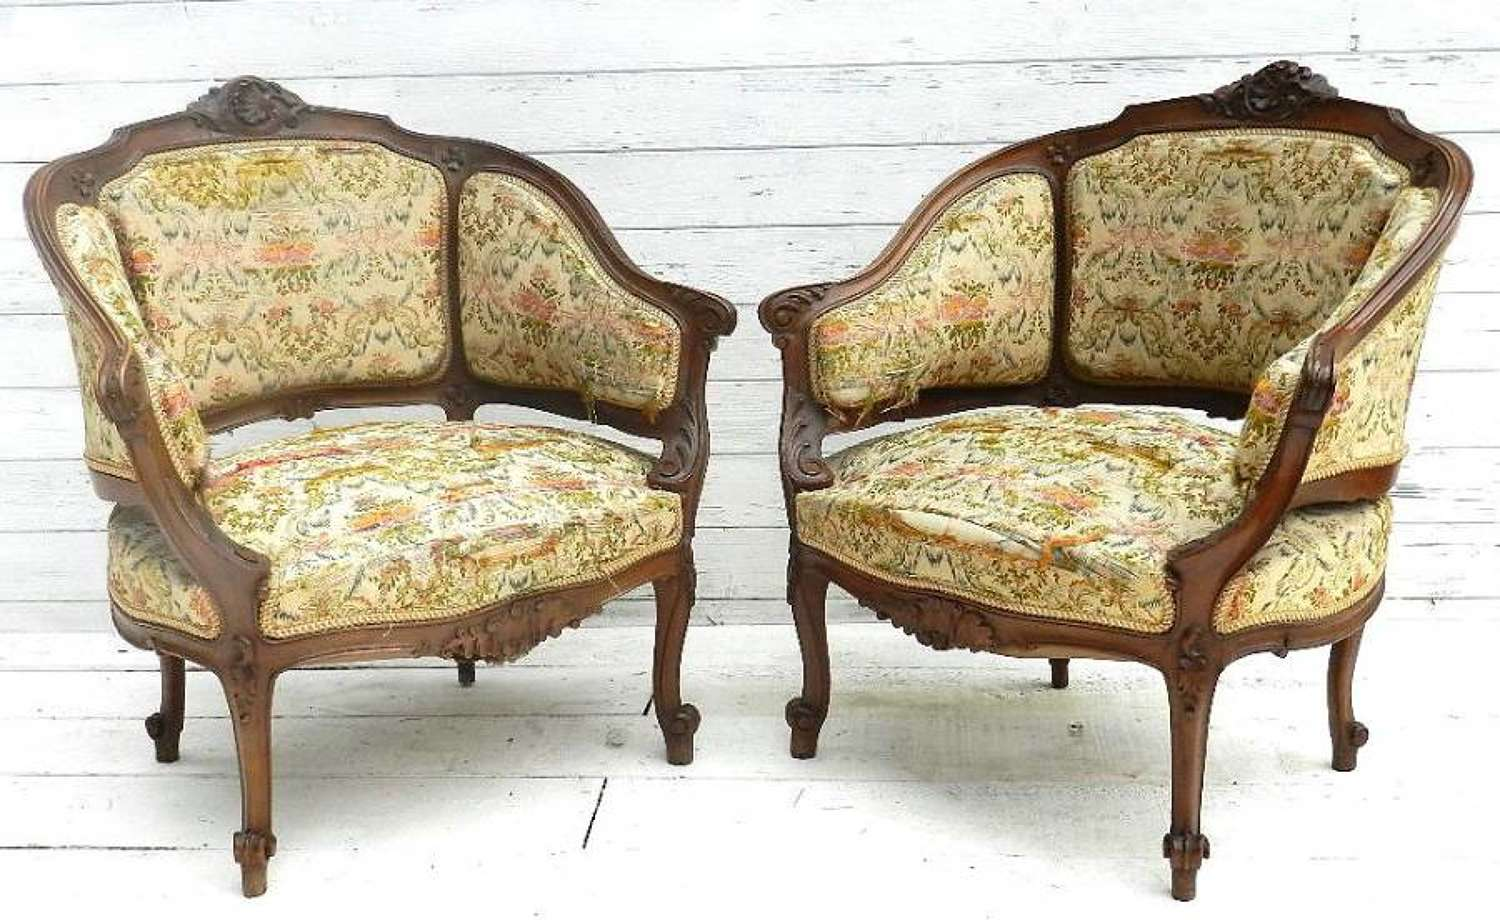 Pair of French C19 Louis XV Fauteuils Armchairs